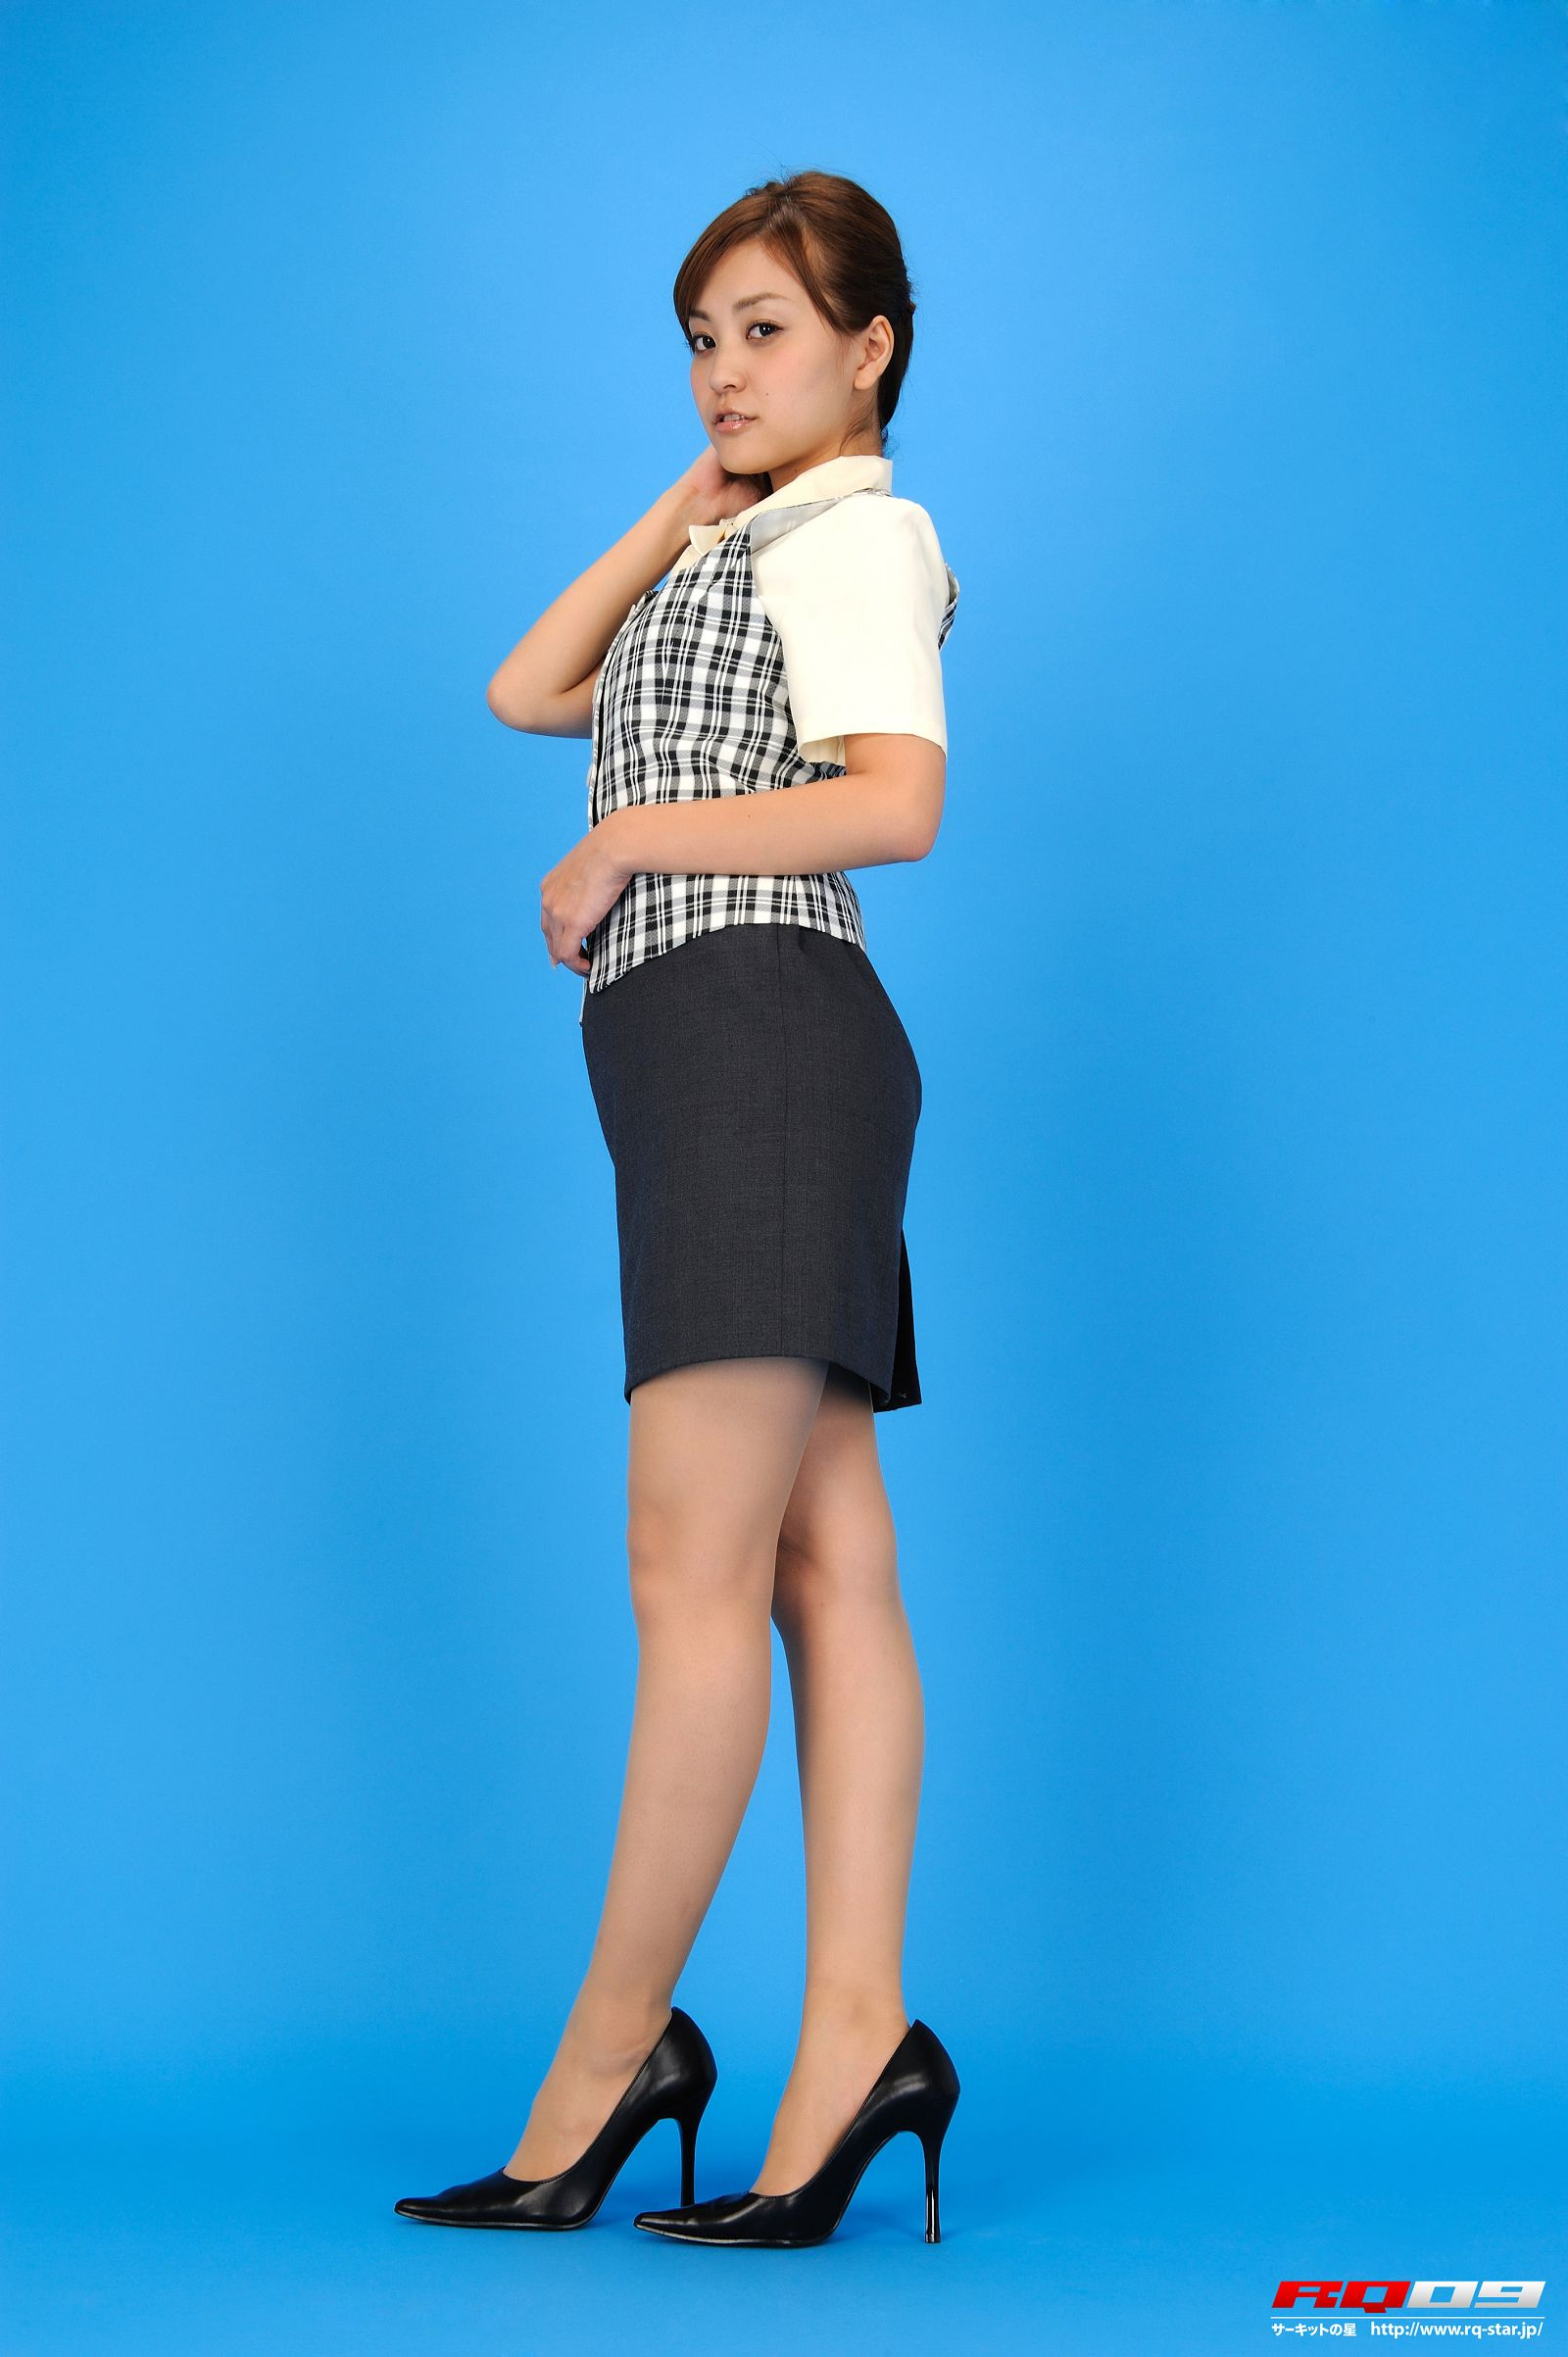 [RQ STAR美女] NO.0230 Mina Momohara 桃原美奈 Office Lady[61P] RQ STAR 第4张